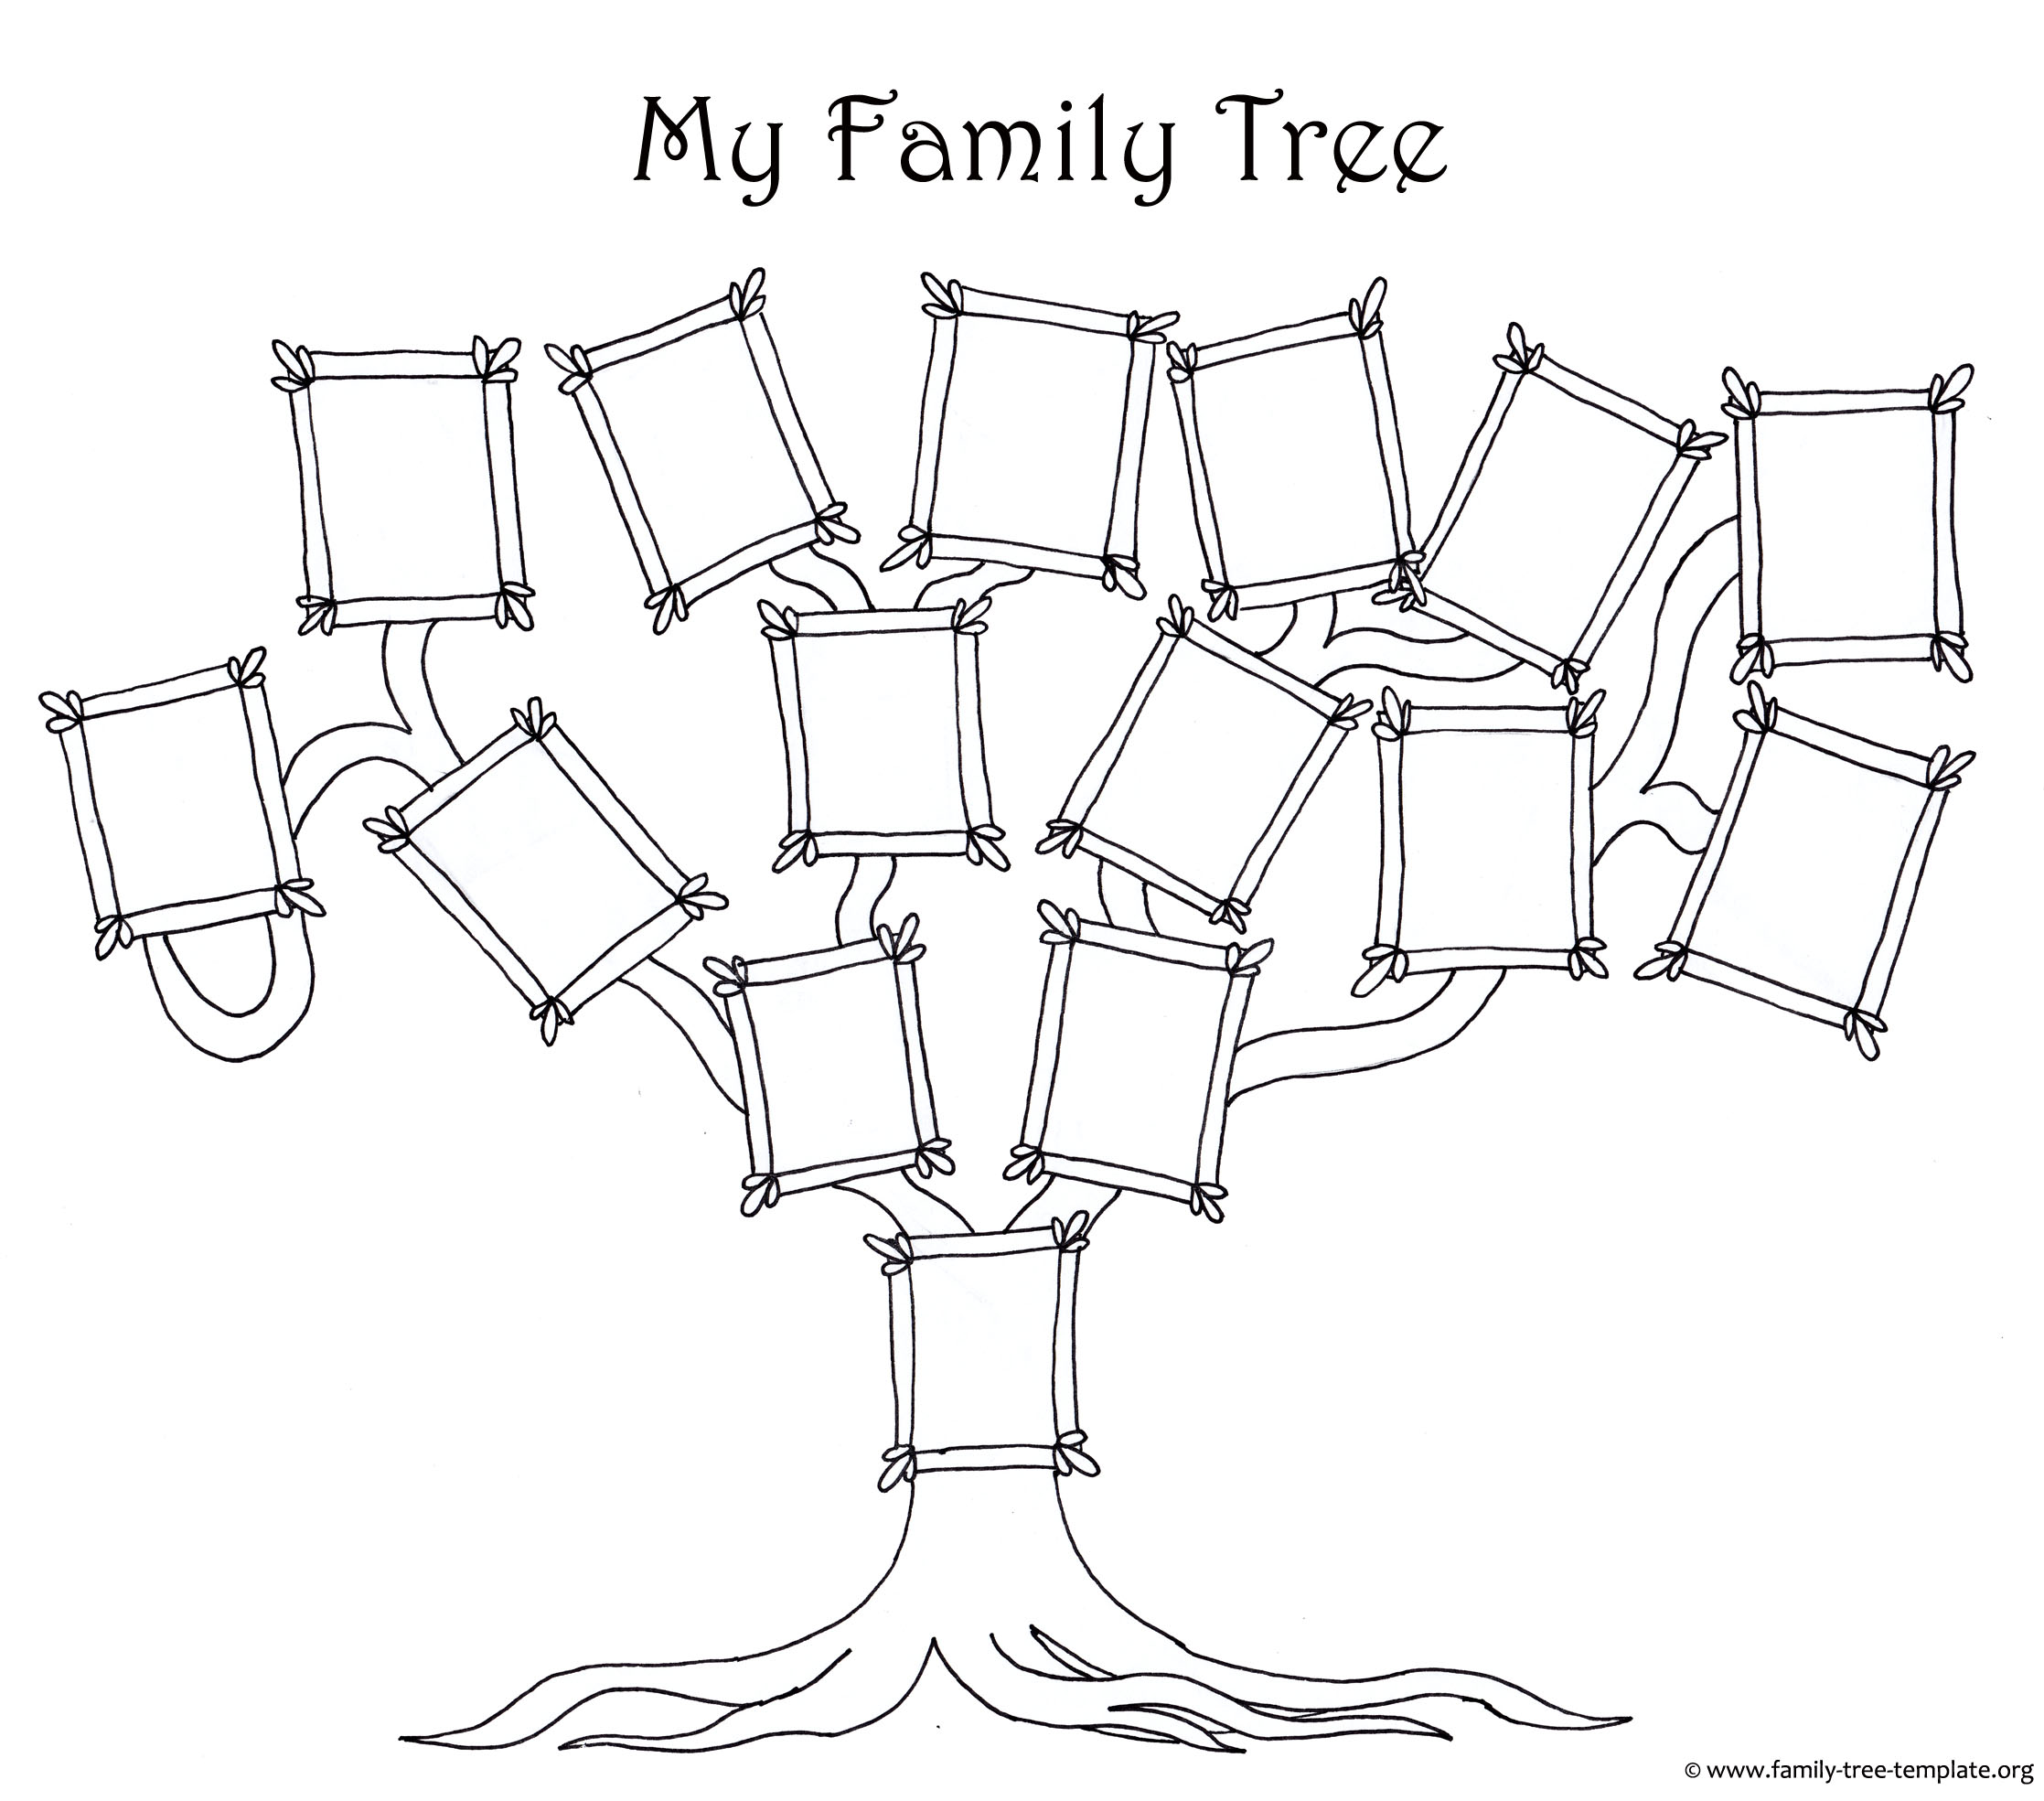 Free family tree template designs for making ancestry charts for Picture of a family tree template